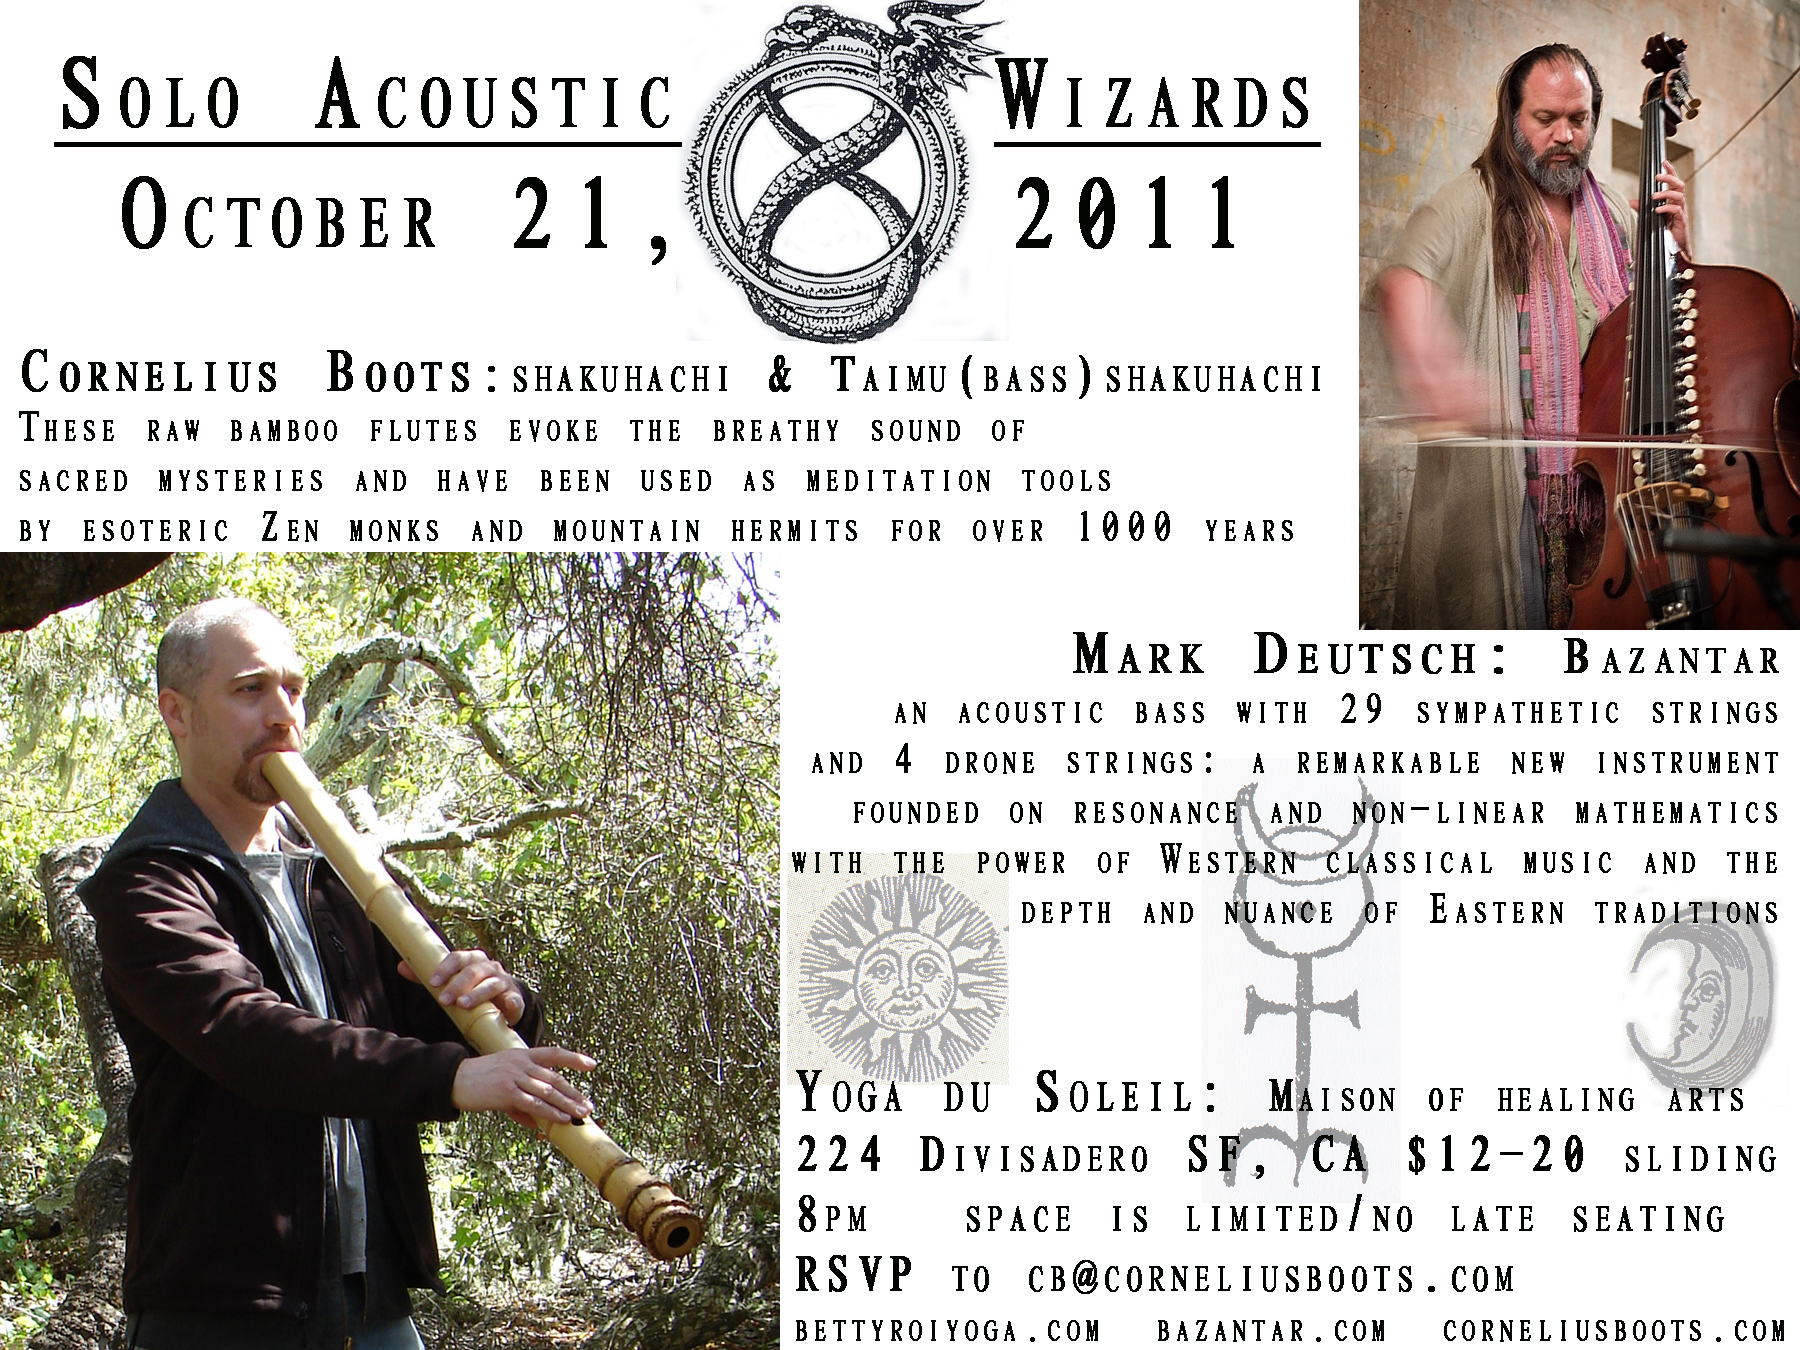 Solo Acoustic Wizards